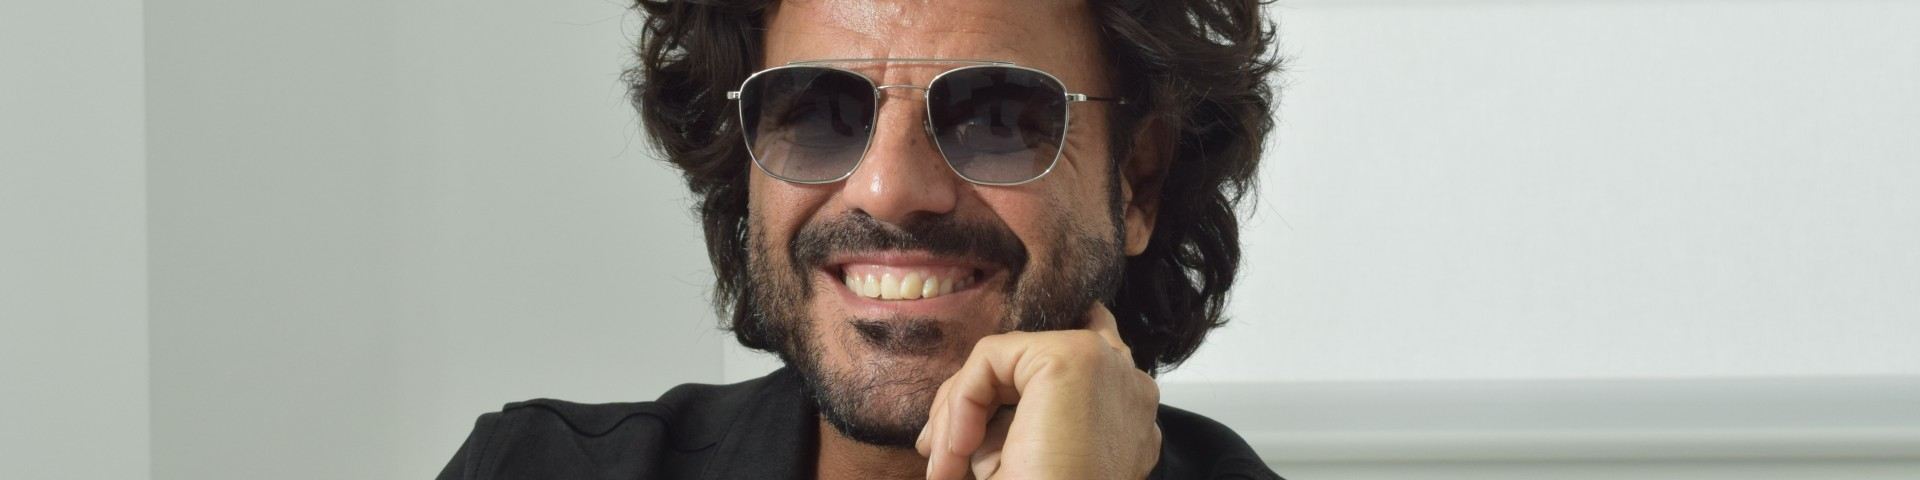 "Sanremo 2019, Francesco Renga: ""È un cortocircuito emotivo"" – Video"